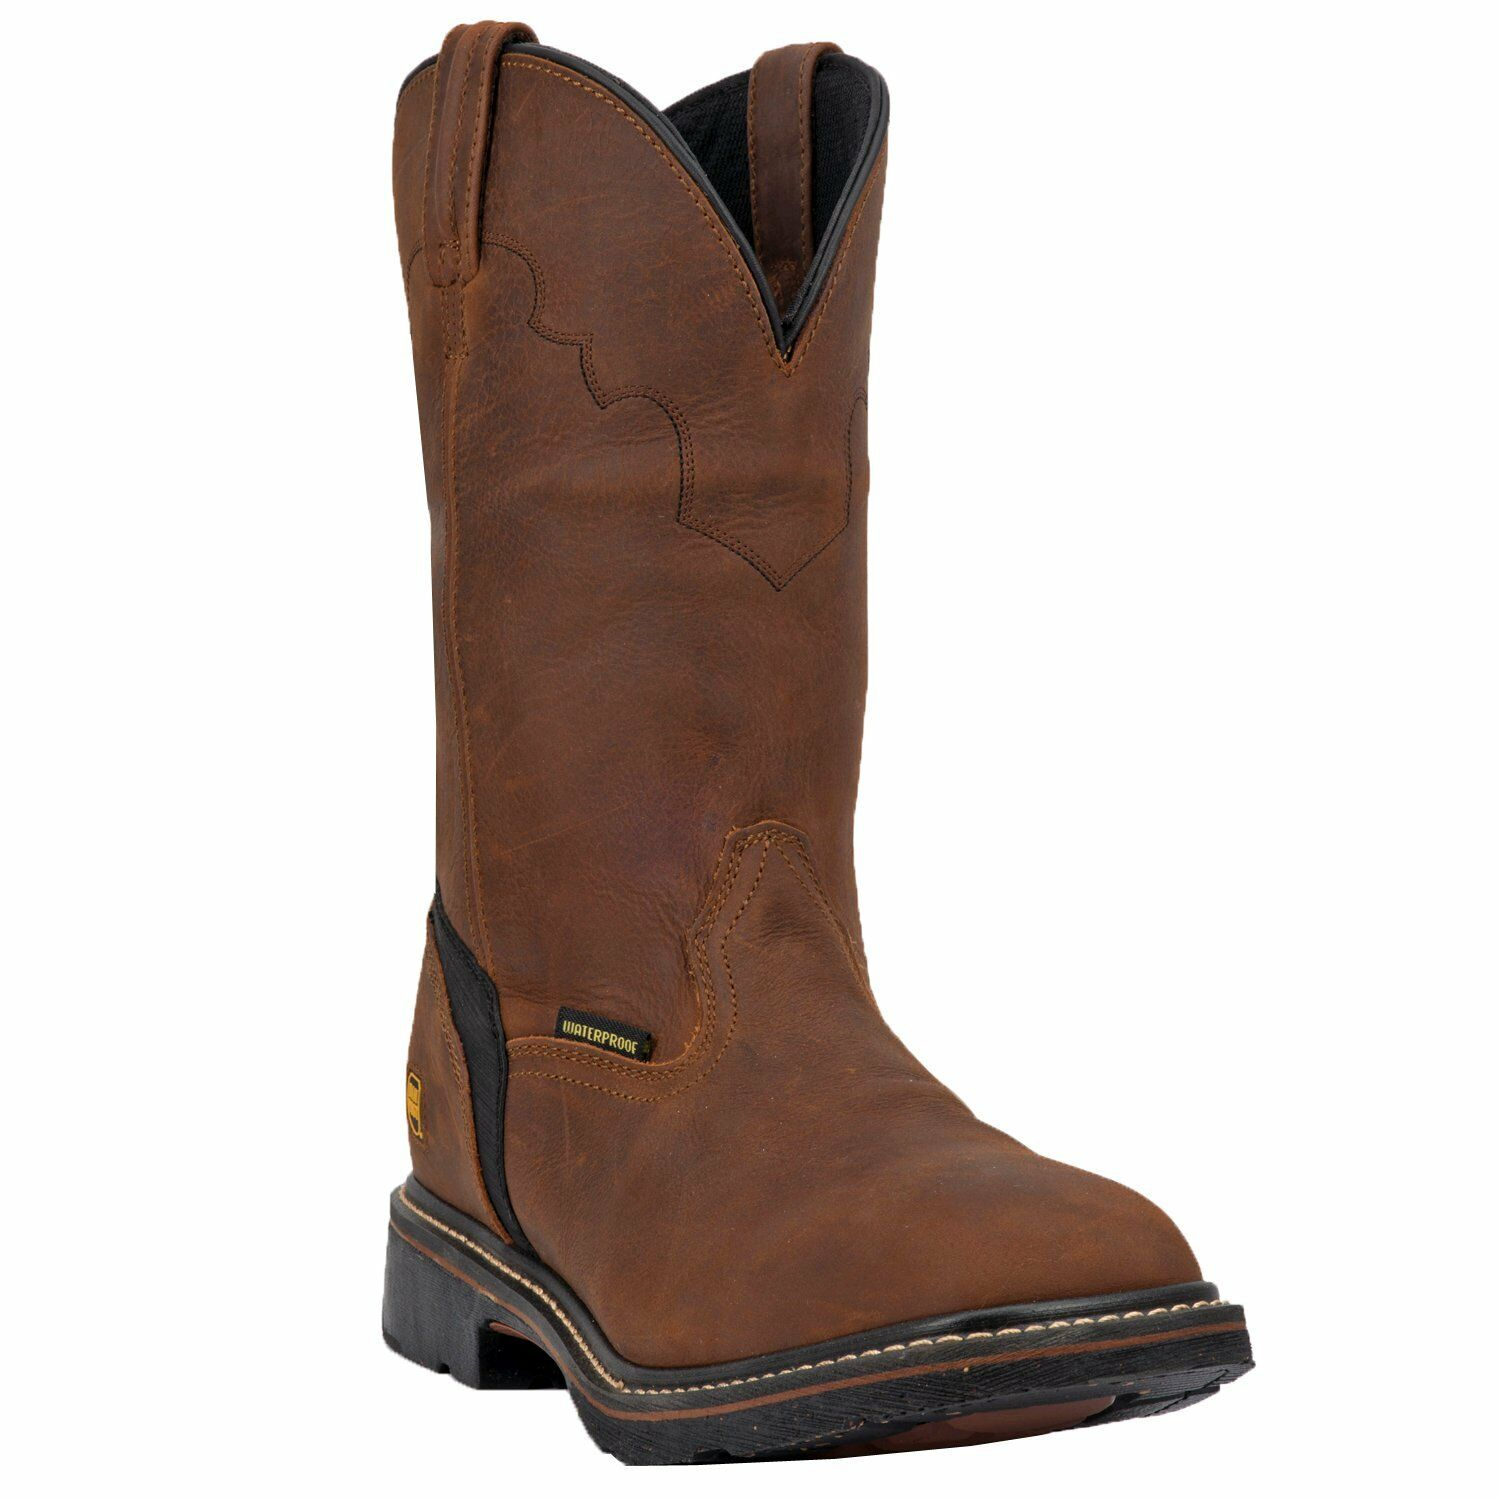 MEN'S DAN POST LUBBOCK BROWN LEATHER SQUARE TOE BOOT DP69878